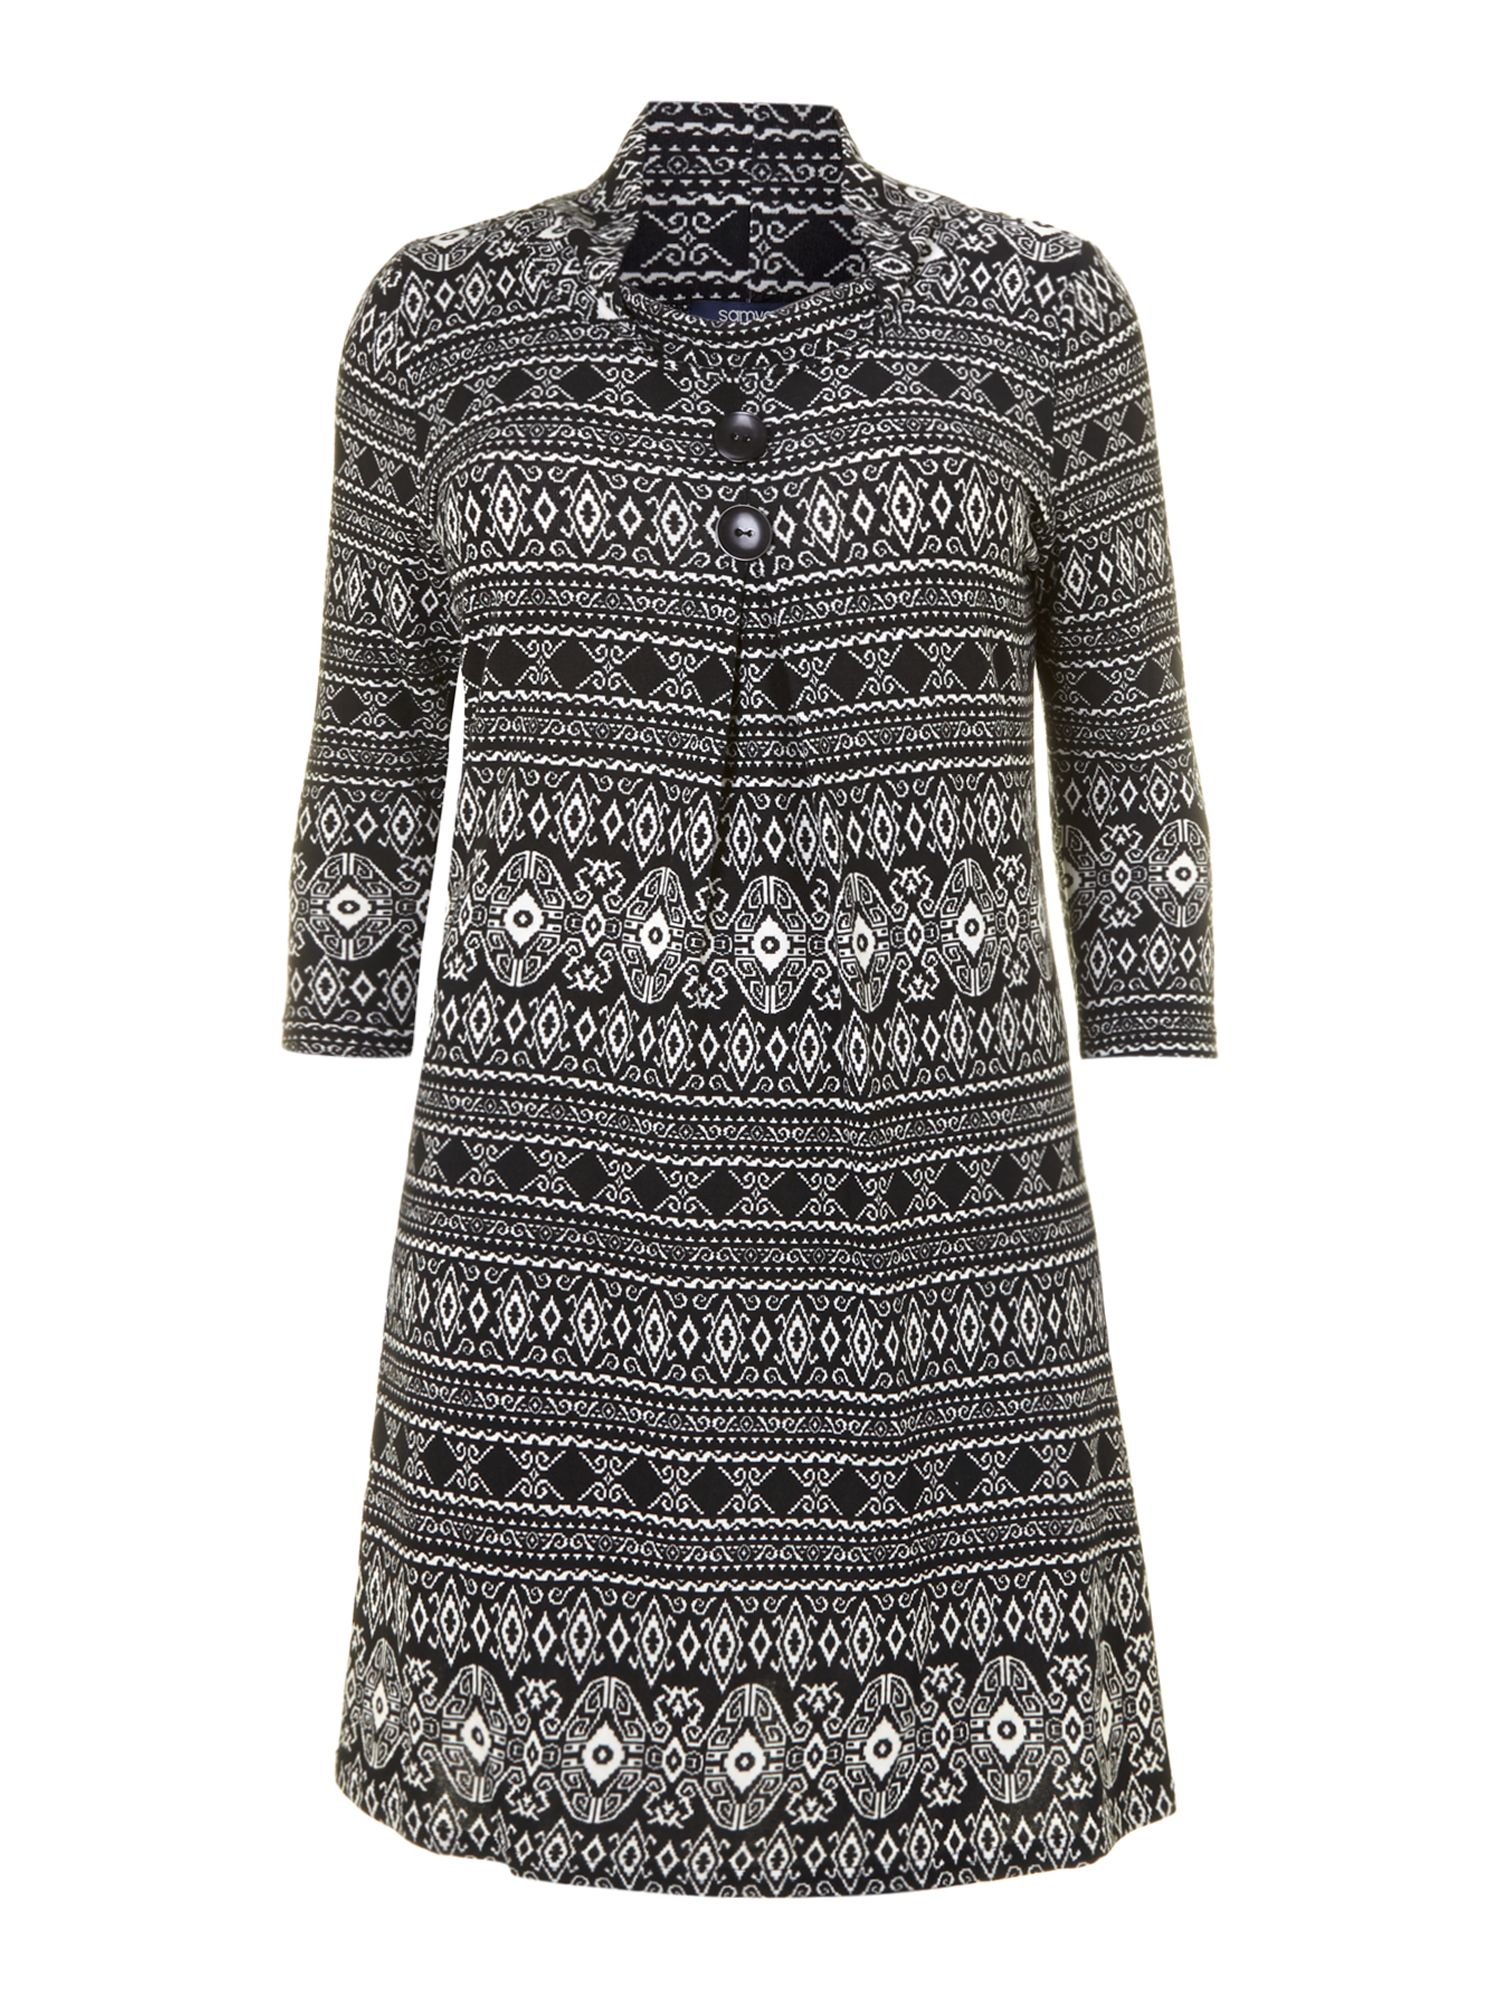 Fairisle knit A line dress